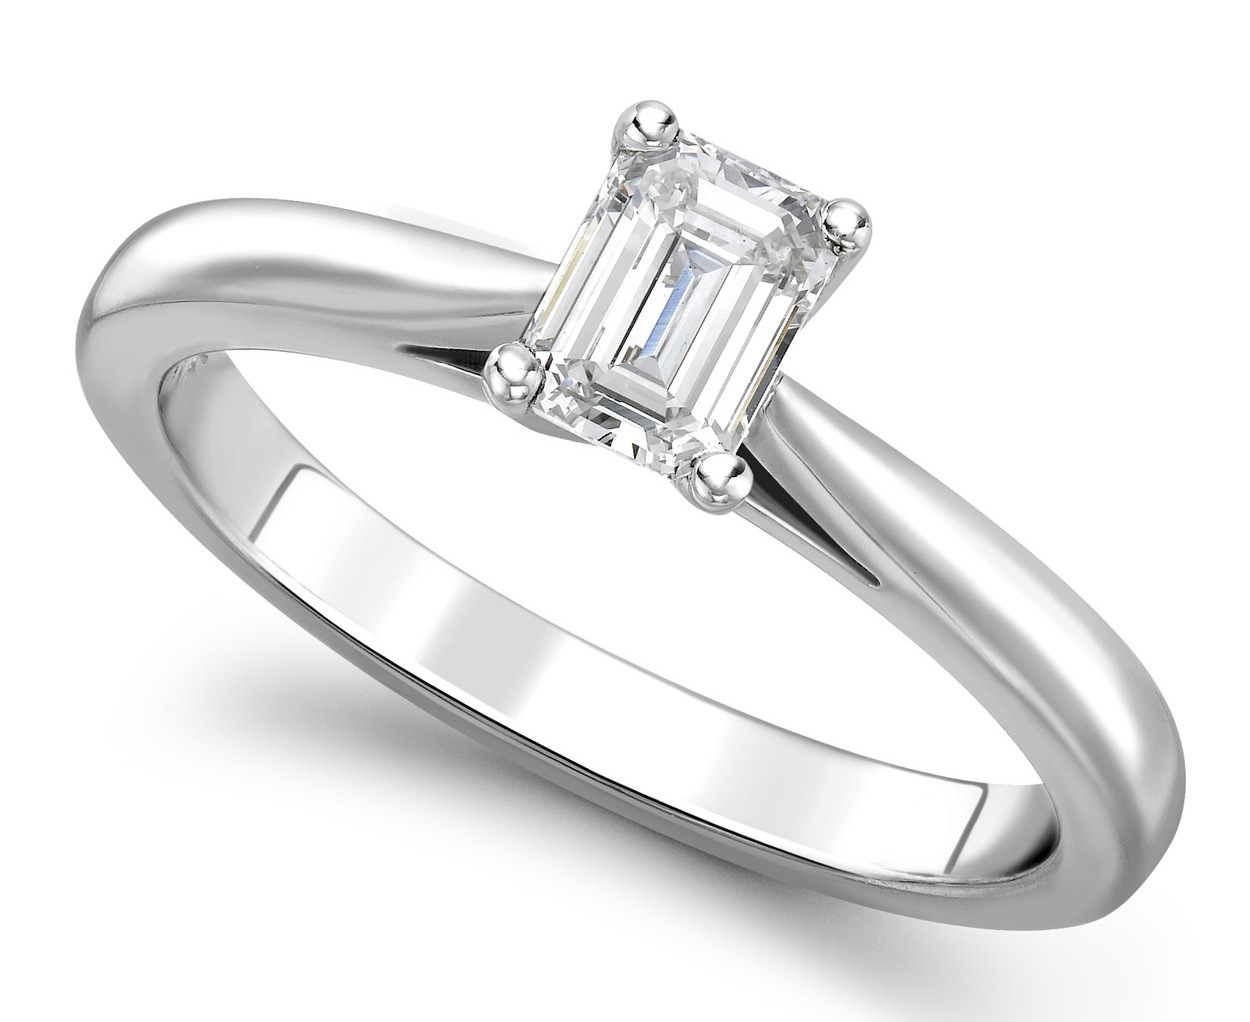 Emerald Cut 4 claw Platinum Diamond Engagement Ring GRC688PLT Main Image